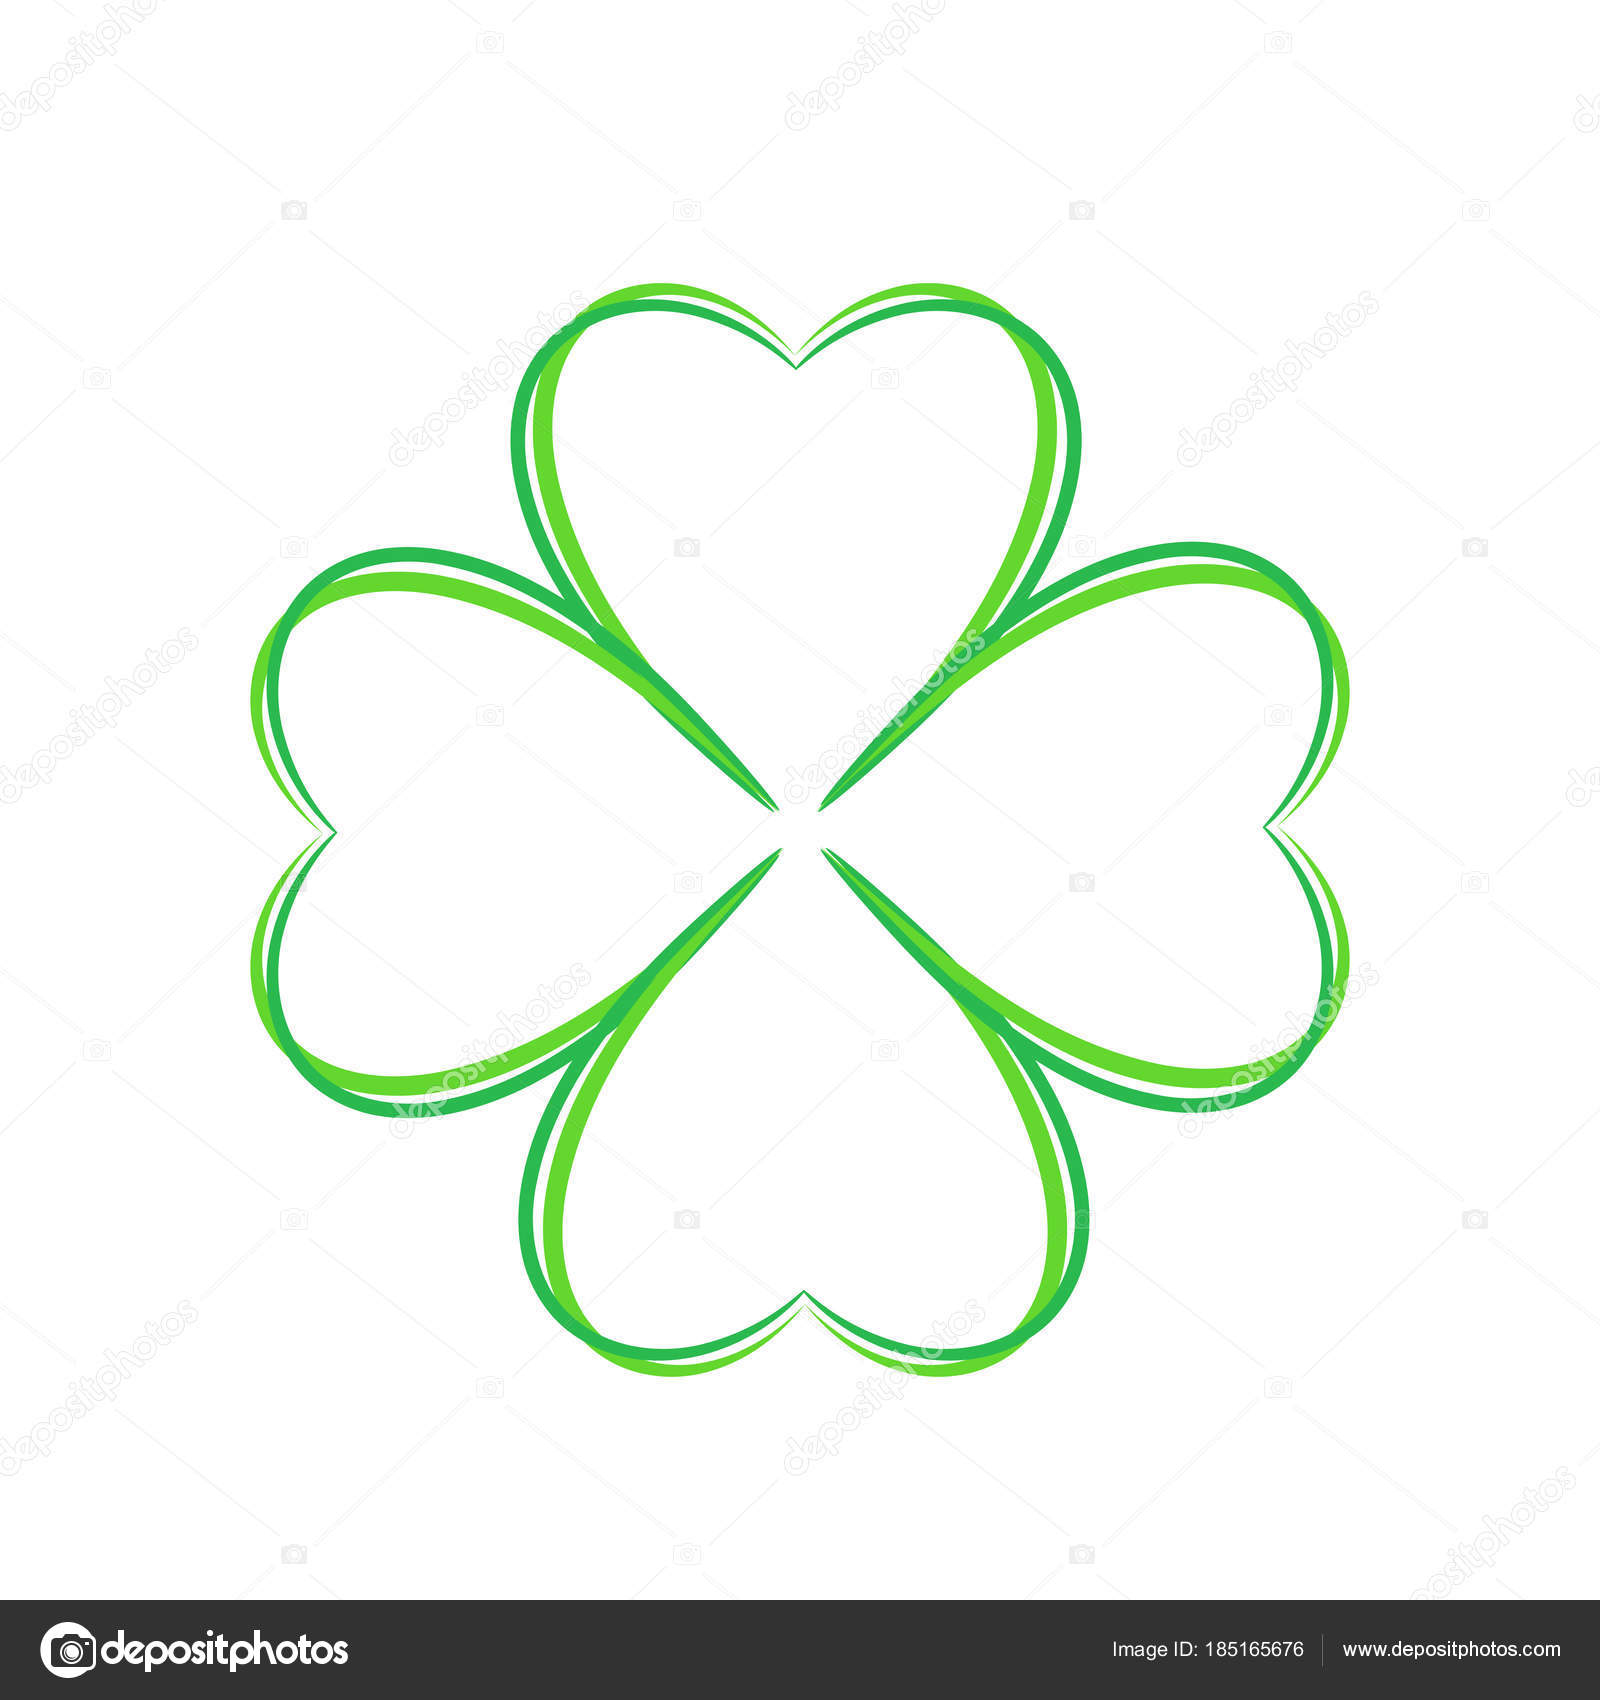 photograph regarding Printable Four Leaf Clover named Printable 4 leaf clovers 4 leaf environmentally friendly clover ahnd